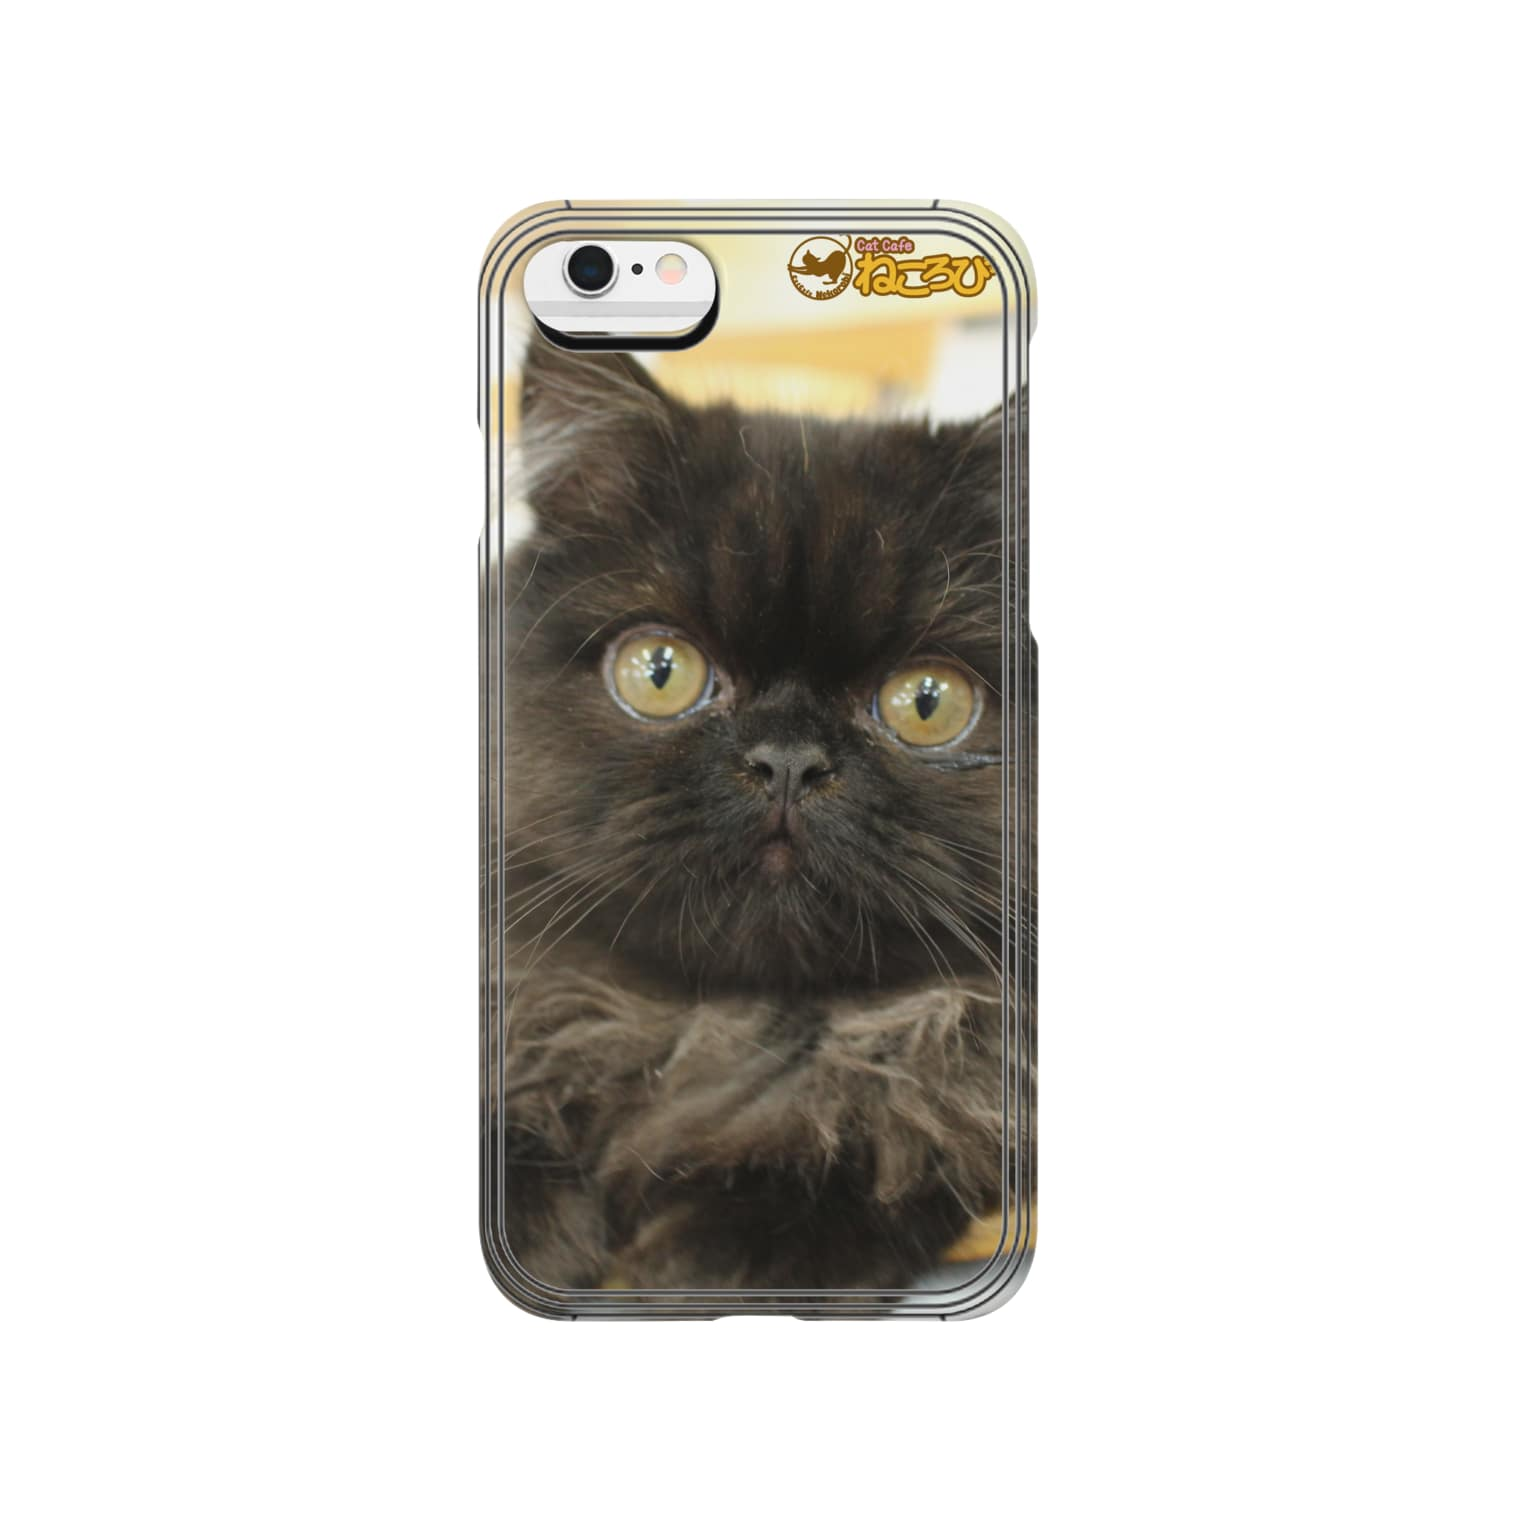 Cat Cafe ねころびのくろすけiPhoneケース Smartphone cases